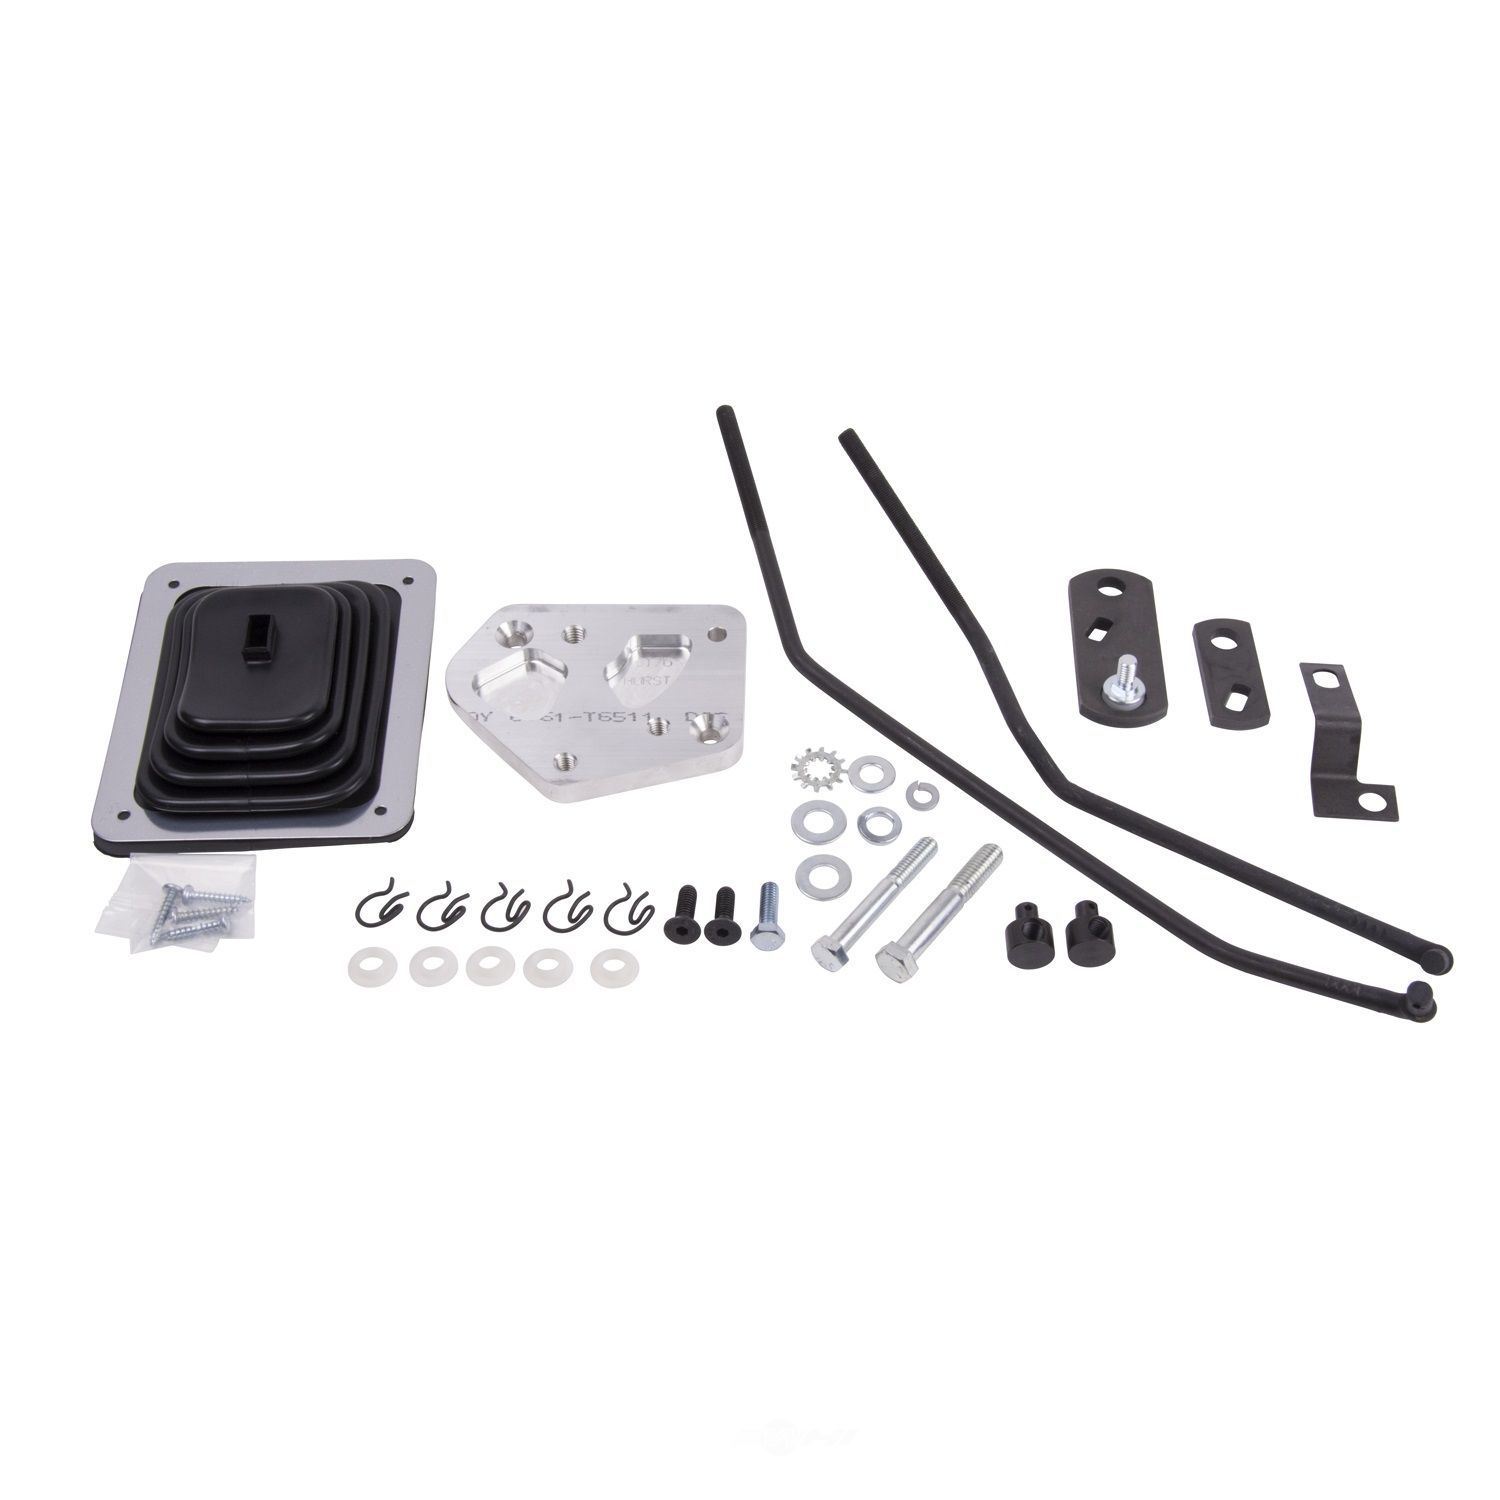 HURST - 3-speed Gear Shift Installation Kit - HUR 3677640